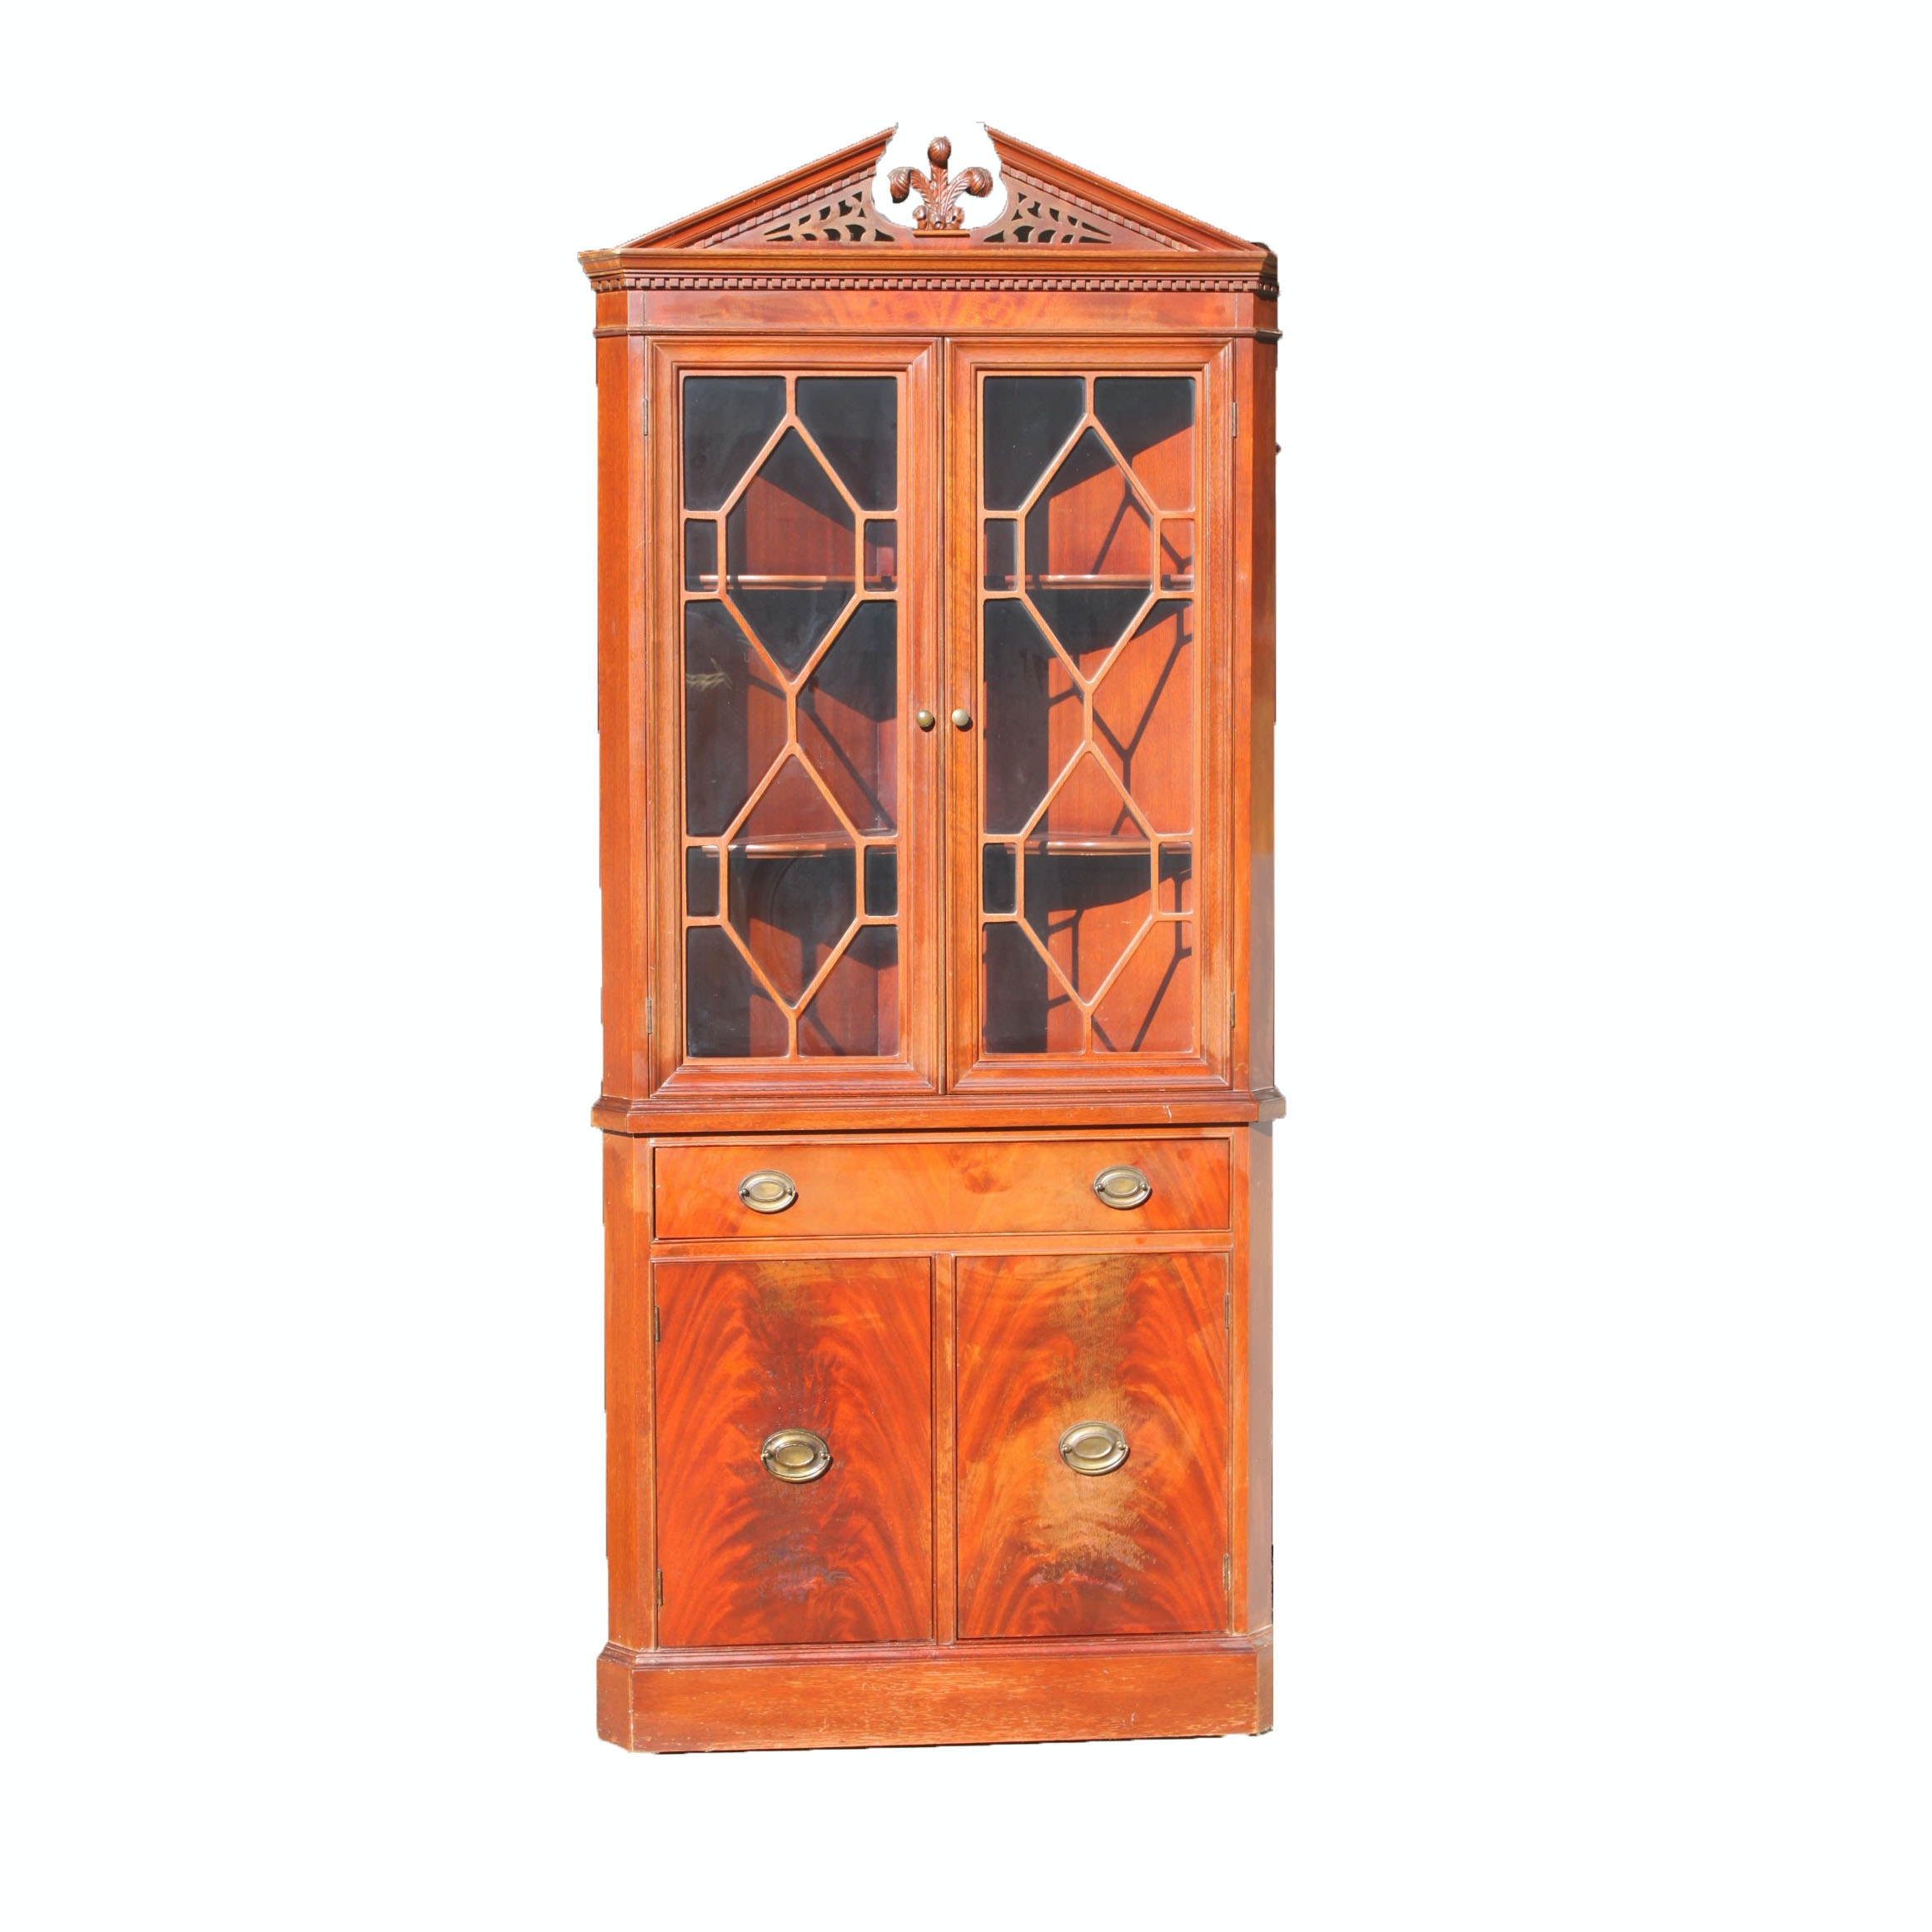 Vintage George III Style Corner Cabinet by Finch Furniture